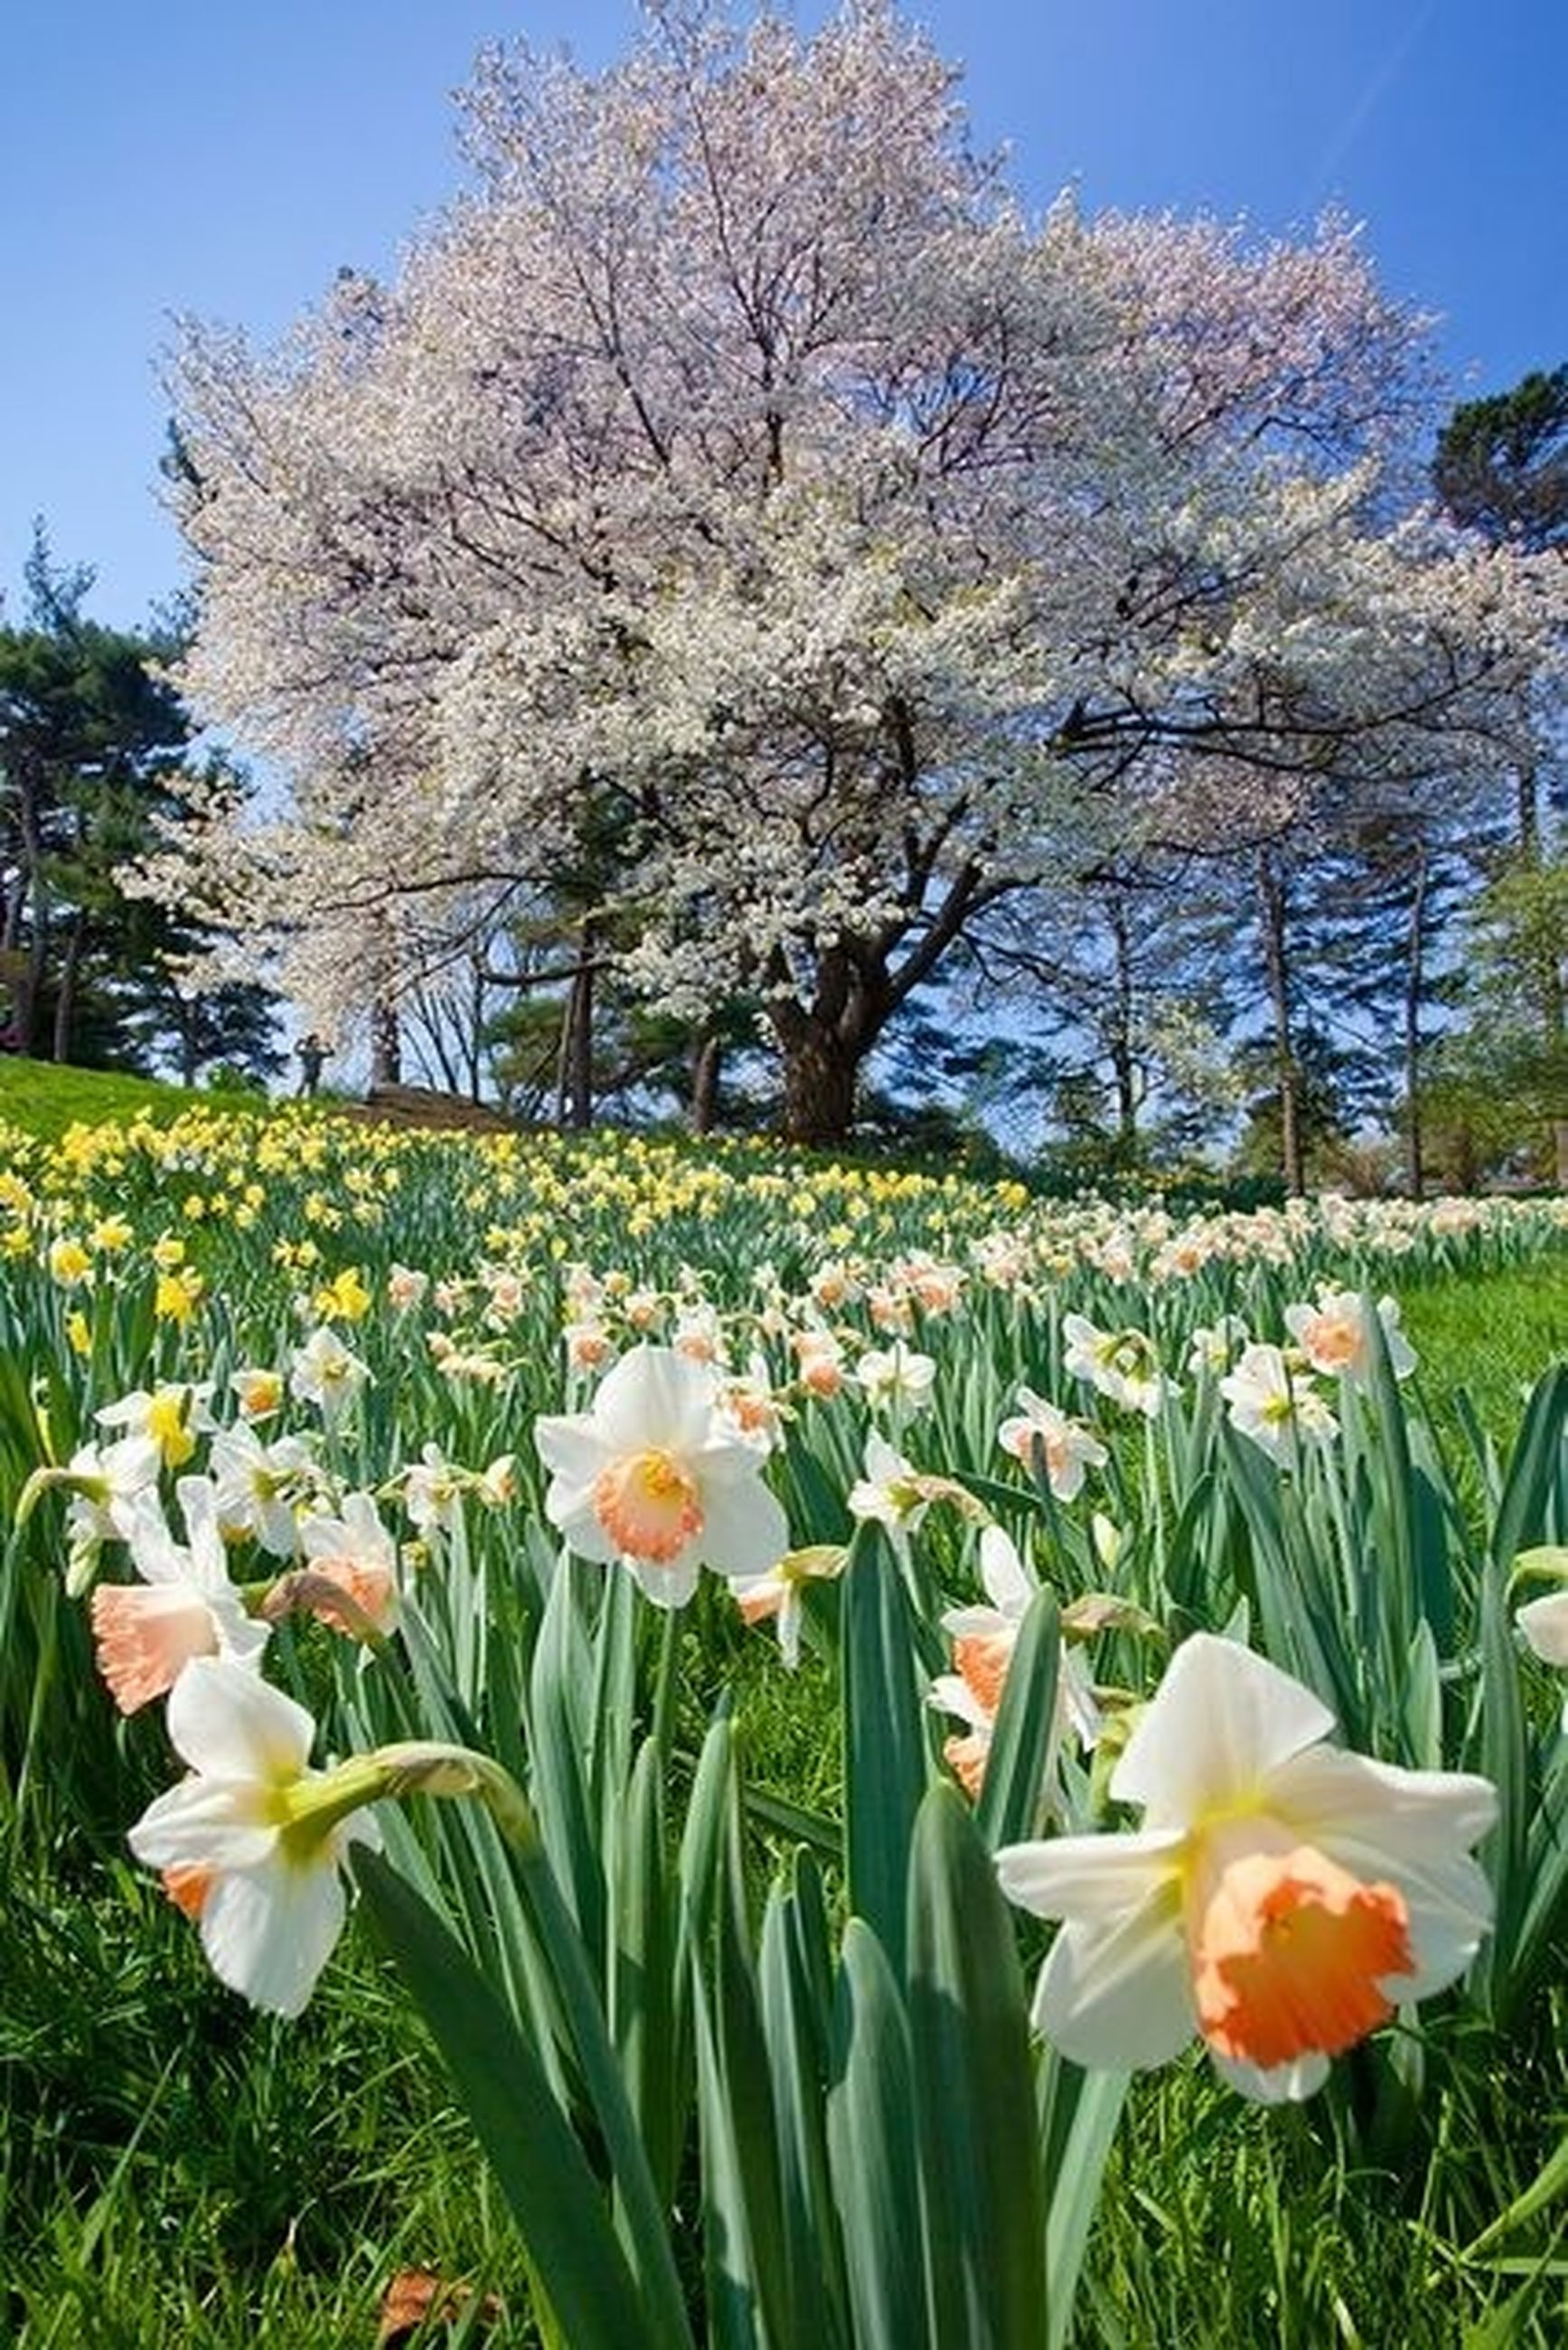 flower, freshness, petal, fragility, growth, beauty in nature, blooming, flower head, nature, field, blossom, in bloom, plant, tree, tranquil scene, grass, tranquility, springtime, white color, stem